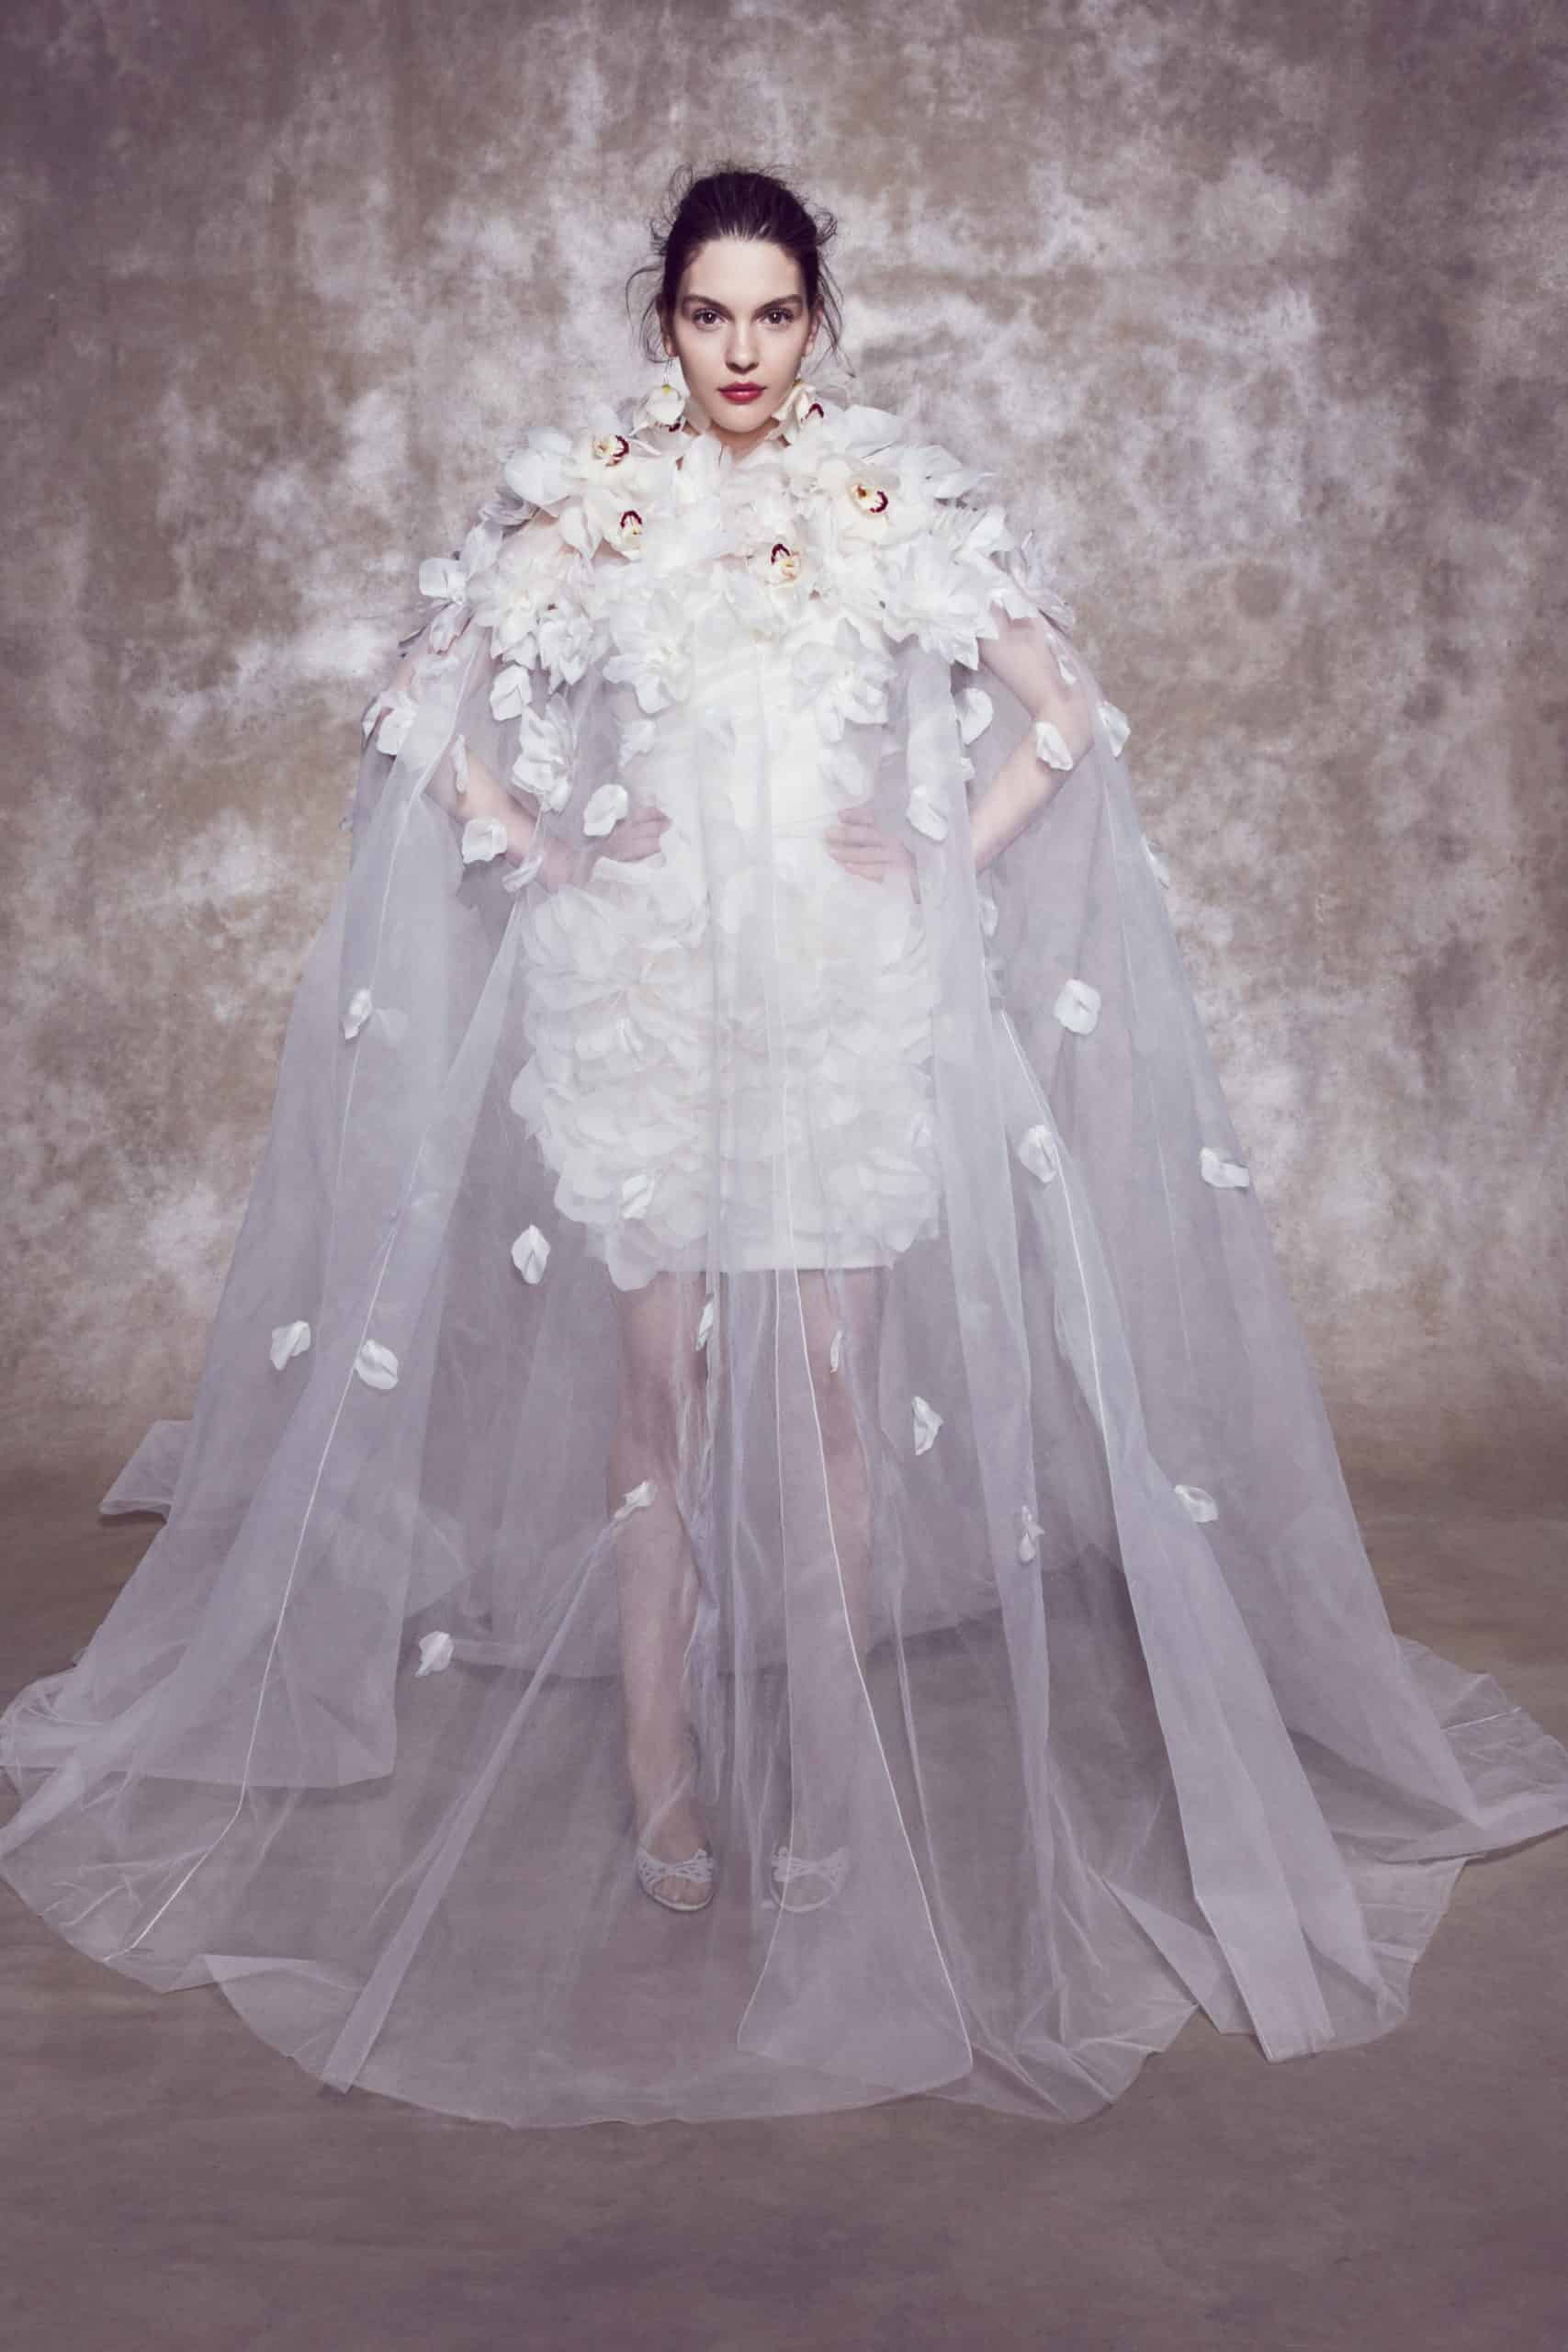 short laced wedding dress with tulle cape and 3d flowers by Marchesa